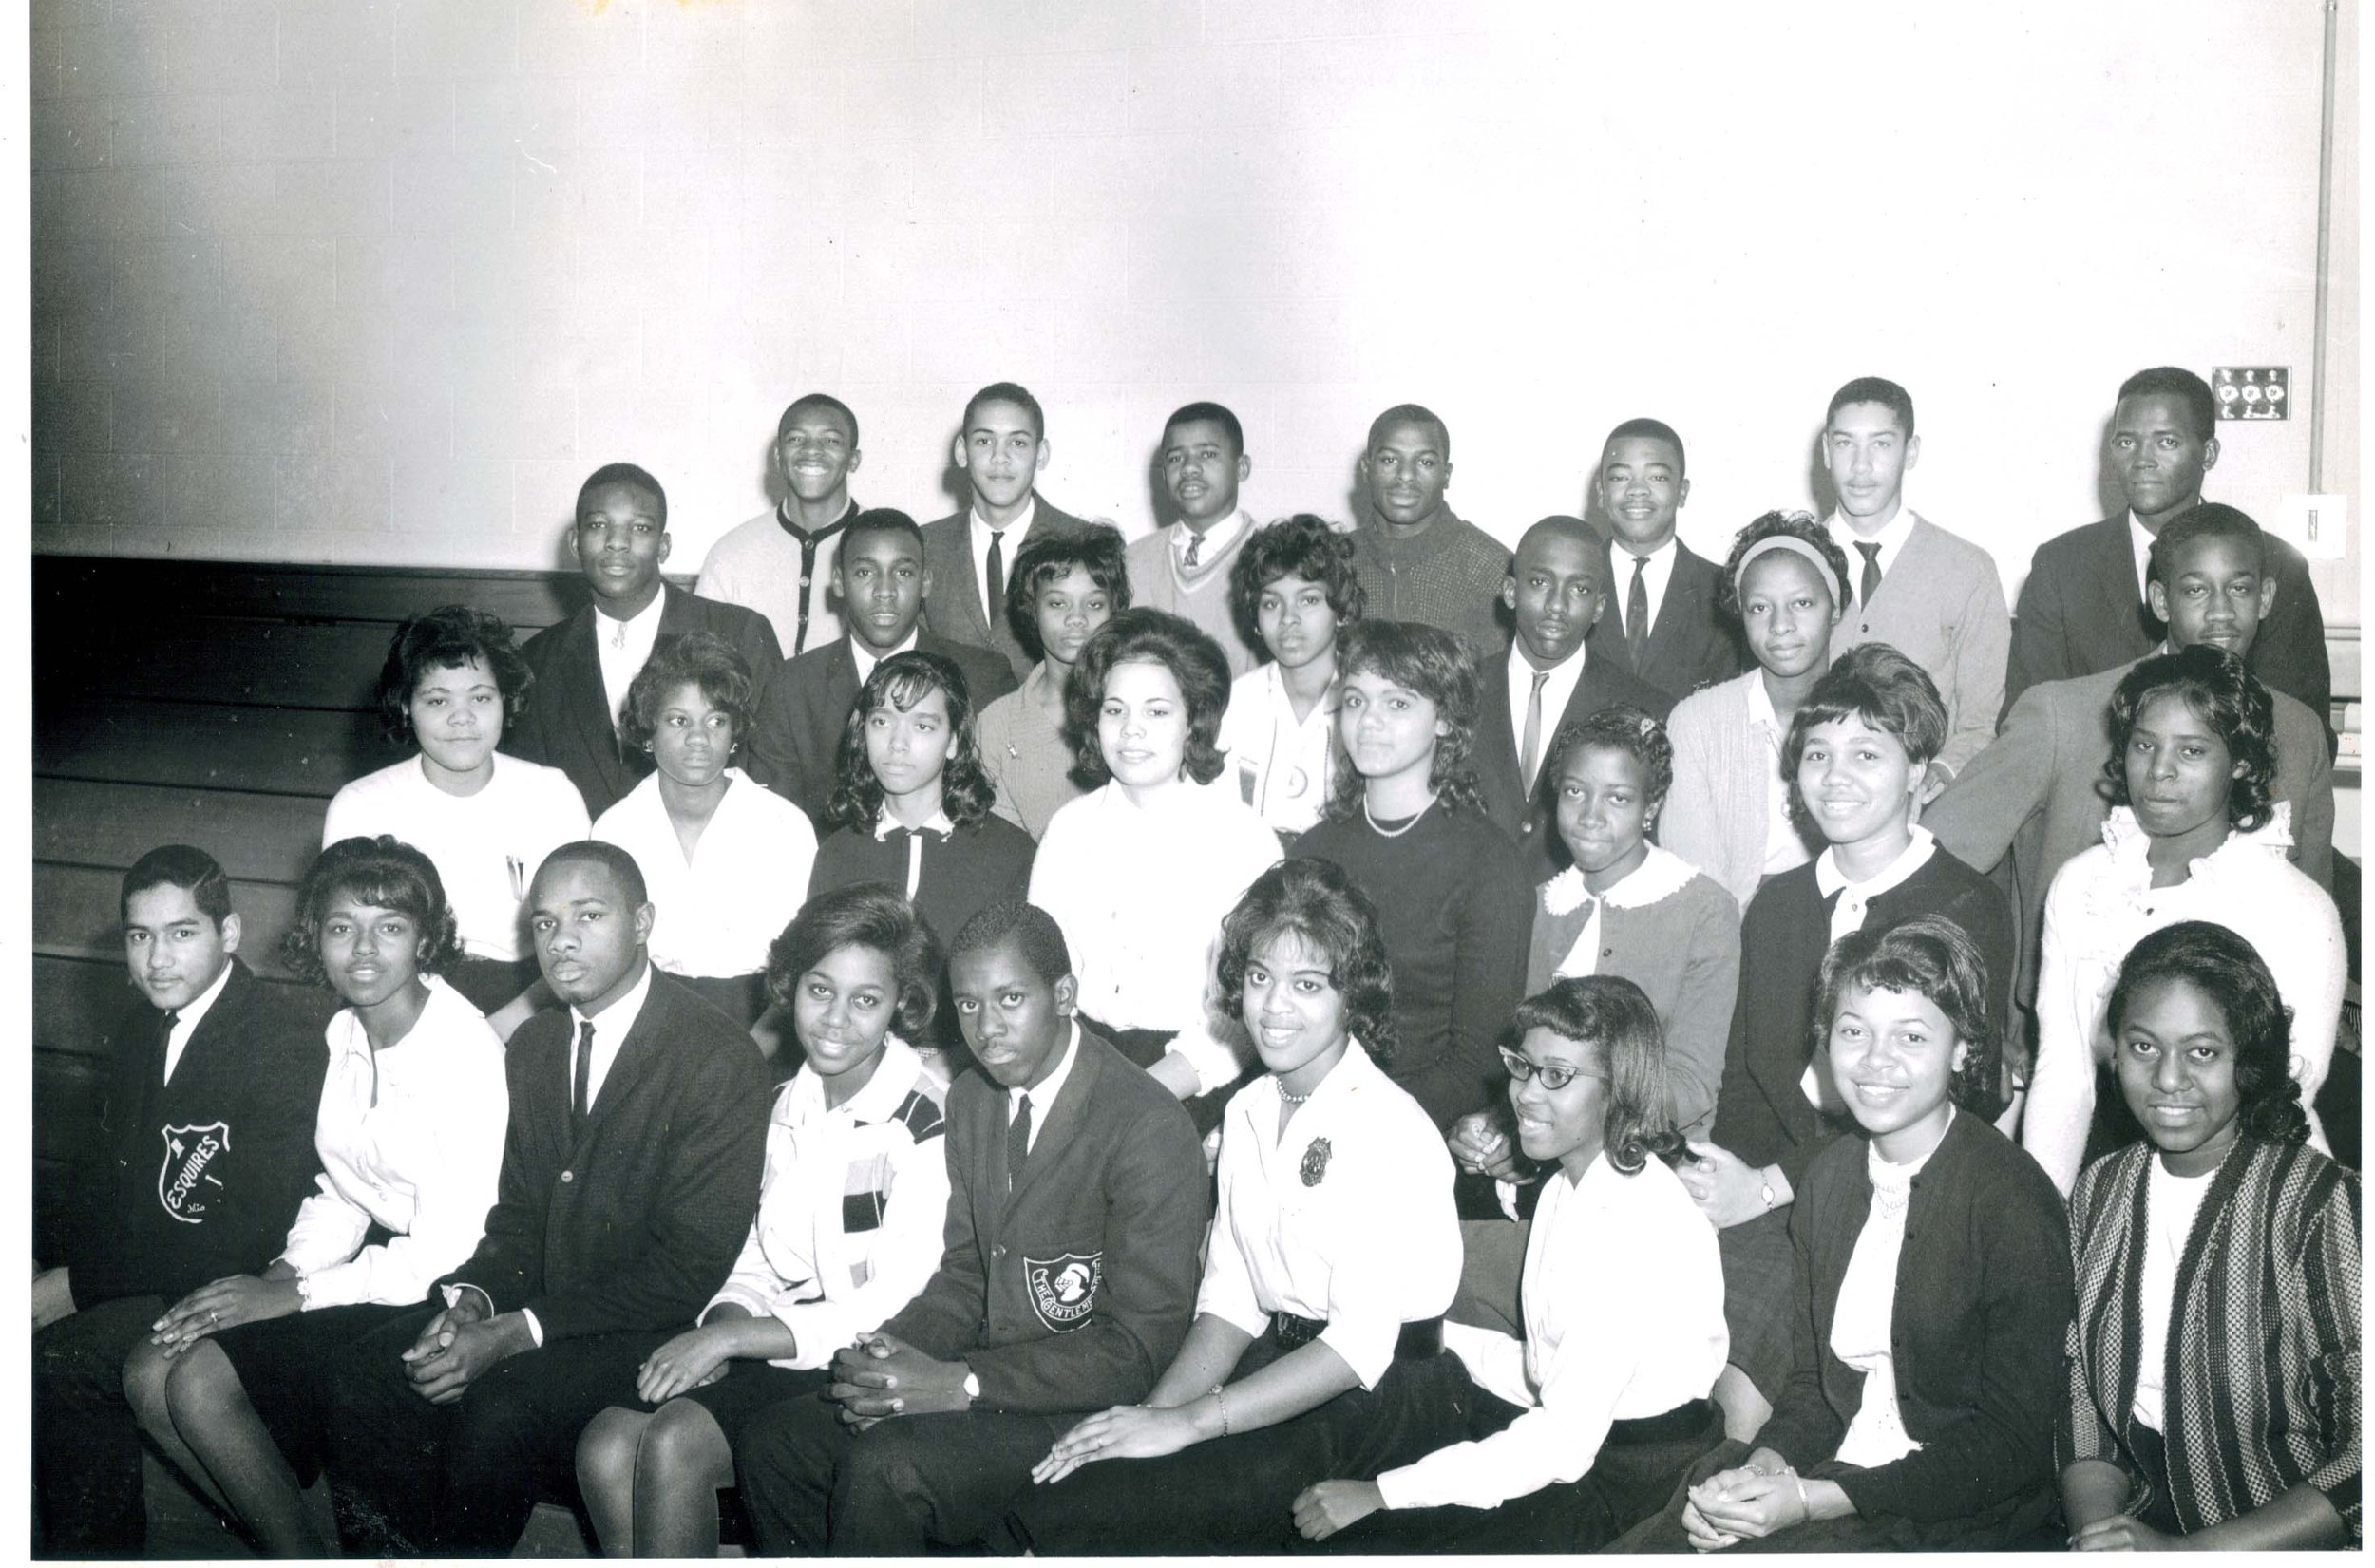 Students from class of 1964